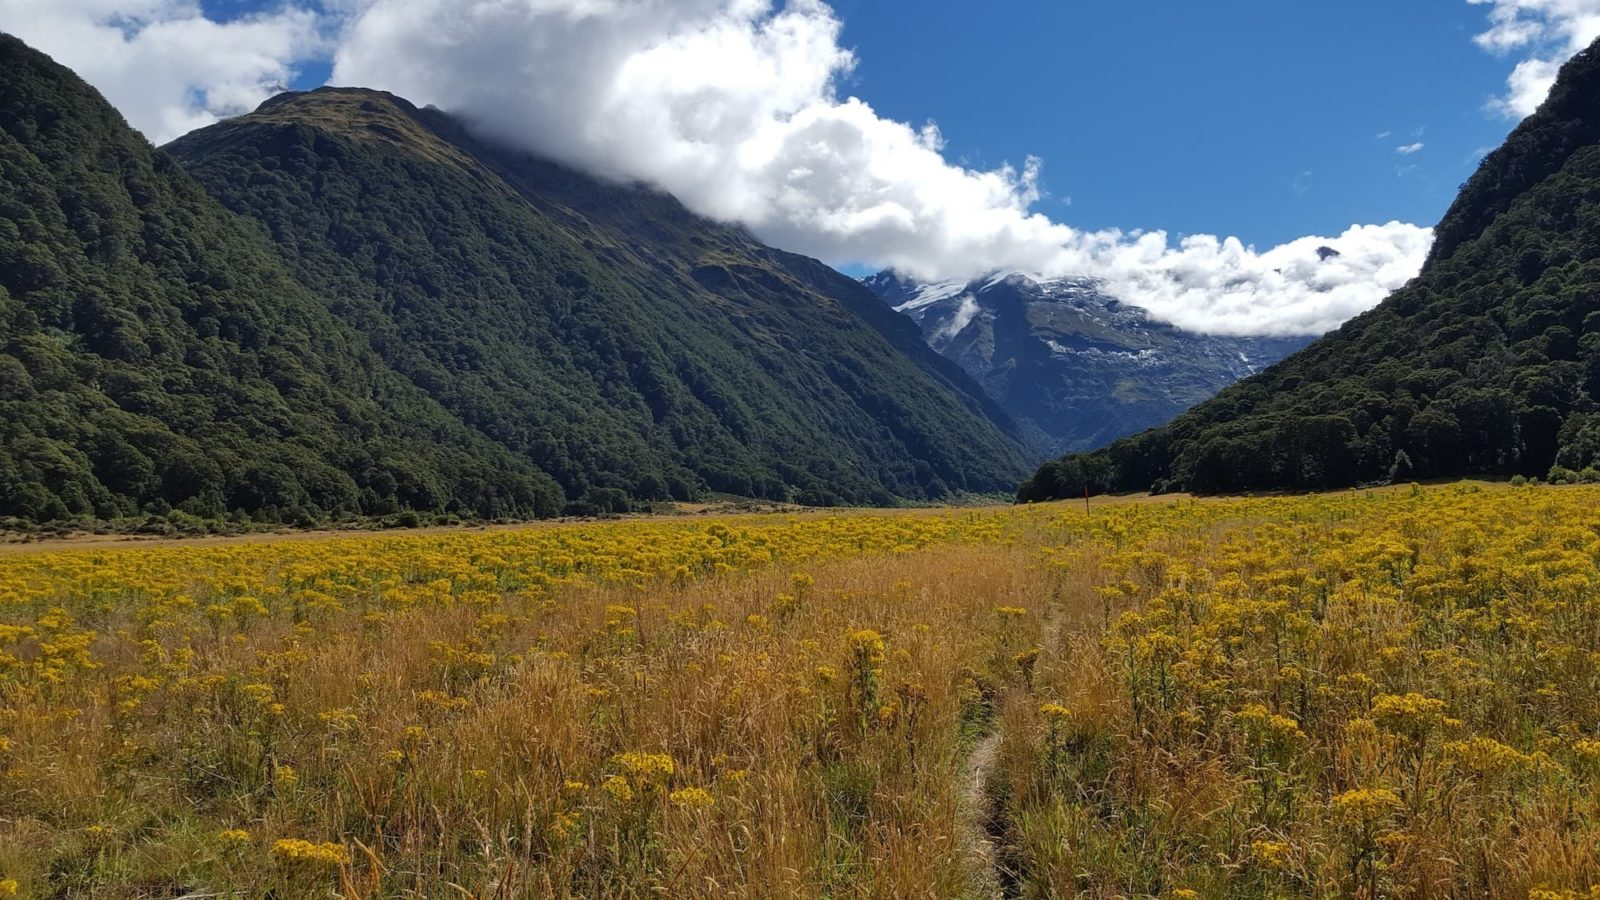 Siberia Valley, Mt Aspiring National Park, NZ